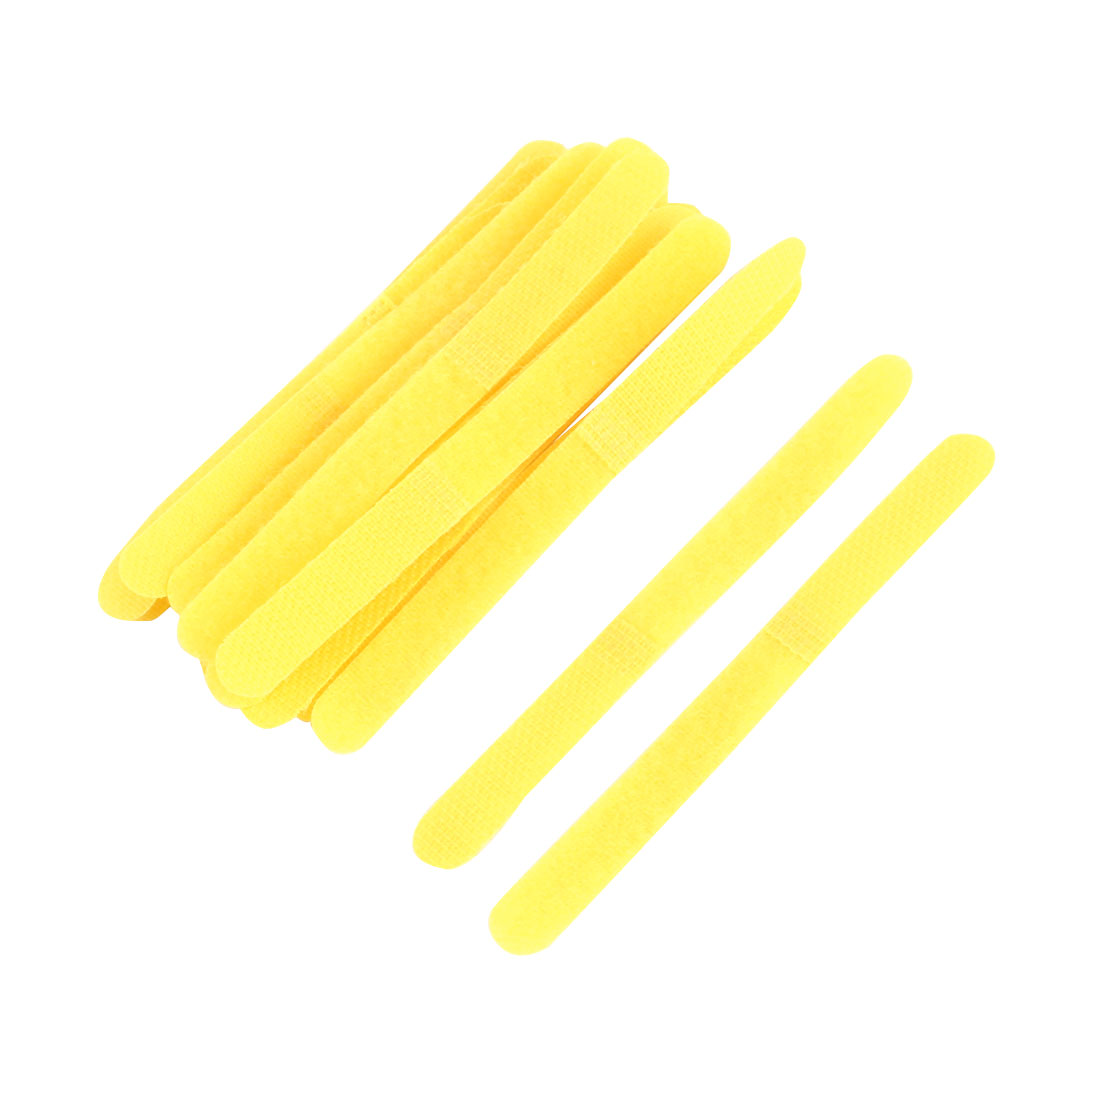 Self Adhesive Roll Strip Fastener Hook and Loop Tape 11cm Long Yellow 16pcs